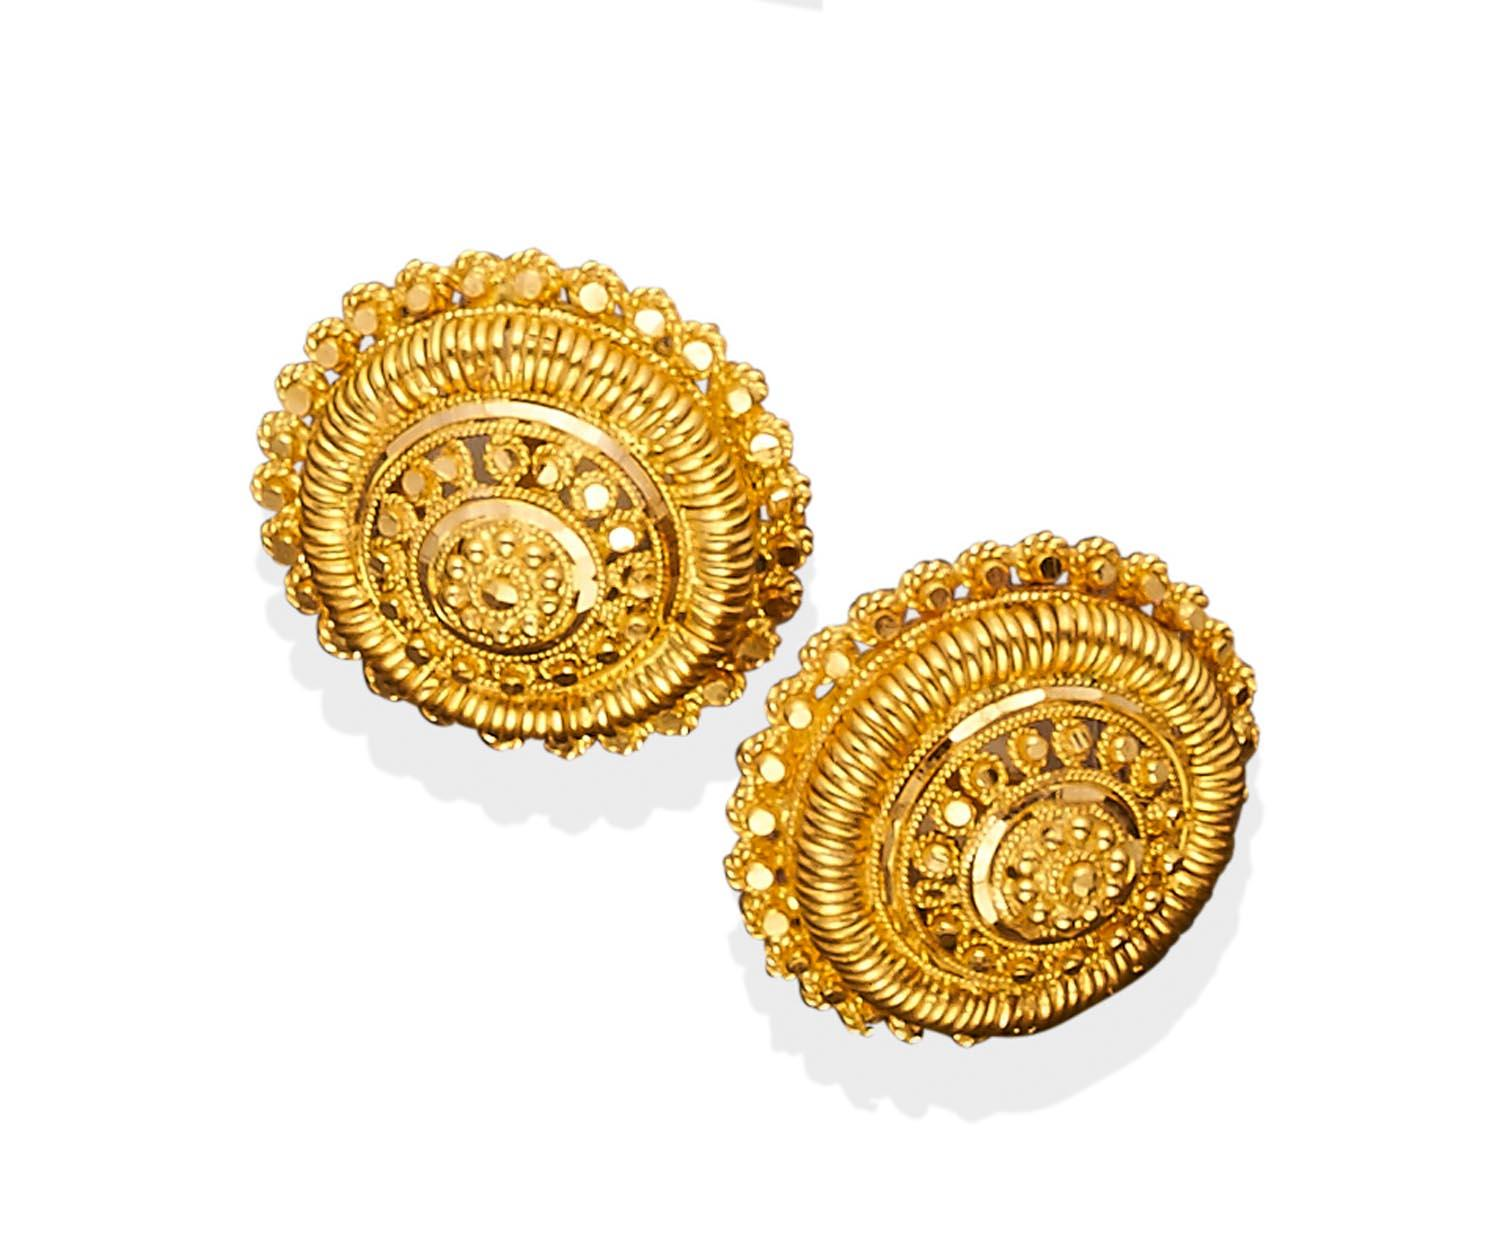 Lot 144 Of 298 A Pair Indian Gold Earrings Circular Stepped Design 22ct Yellow Weight 15 37 Grams Diameter 25mm Threaded Post Attachments